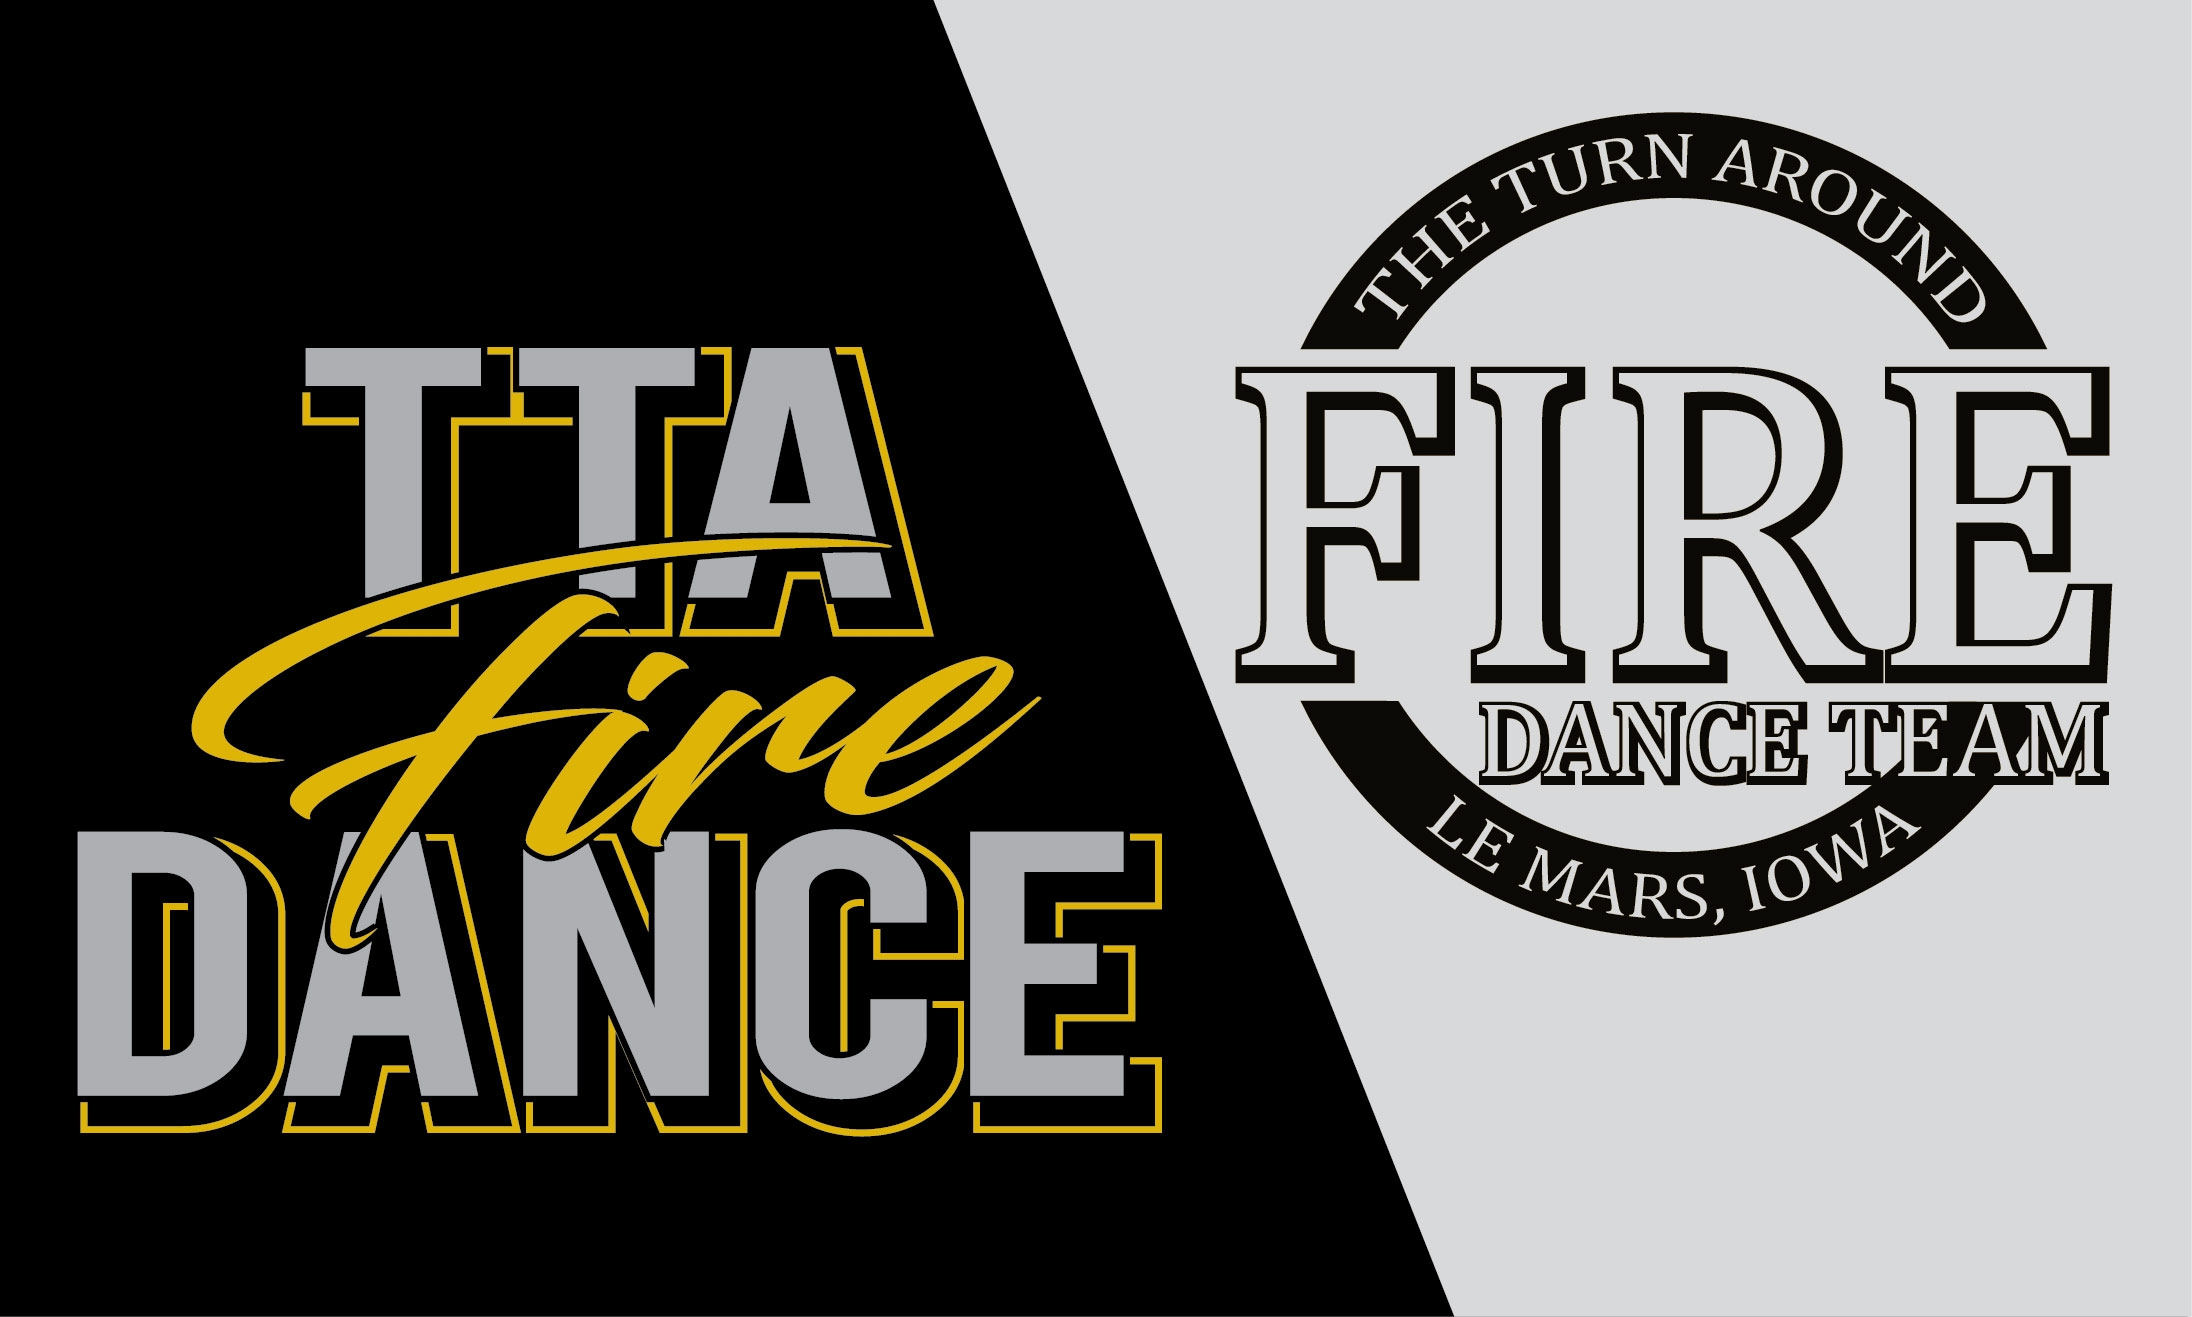 TTA Fire Dance Team